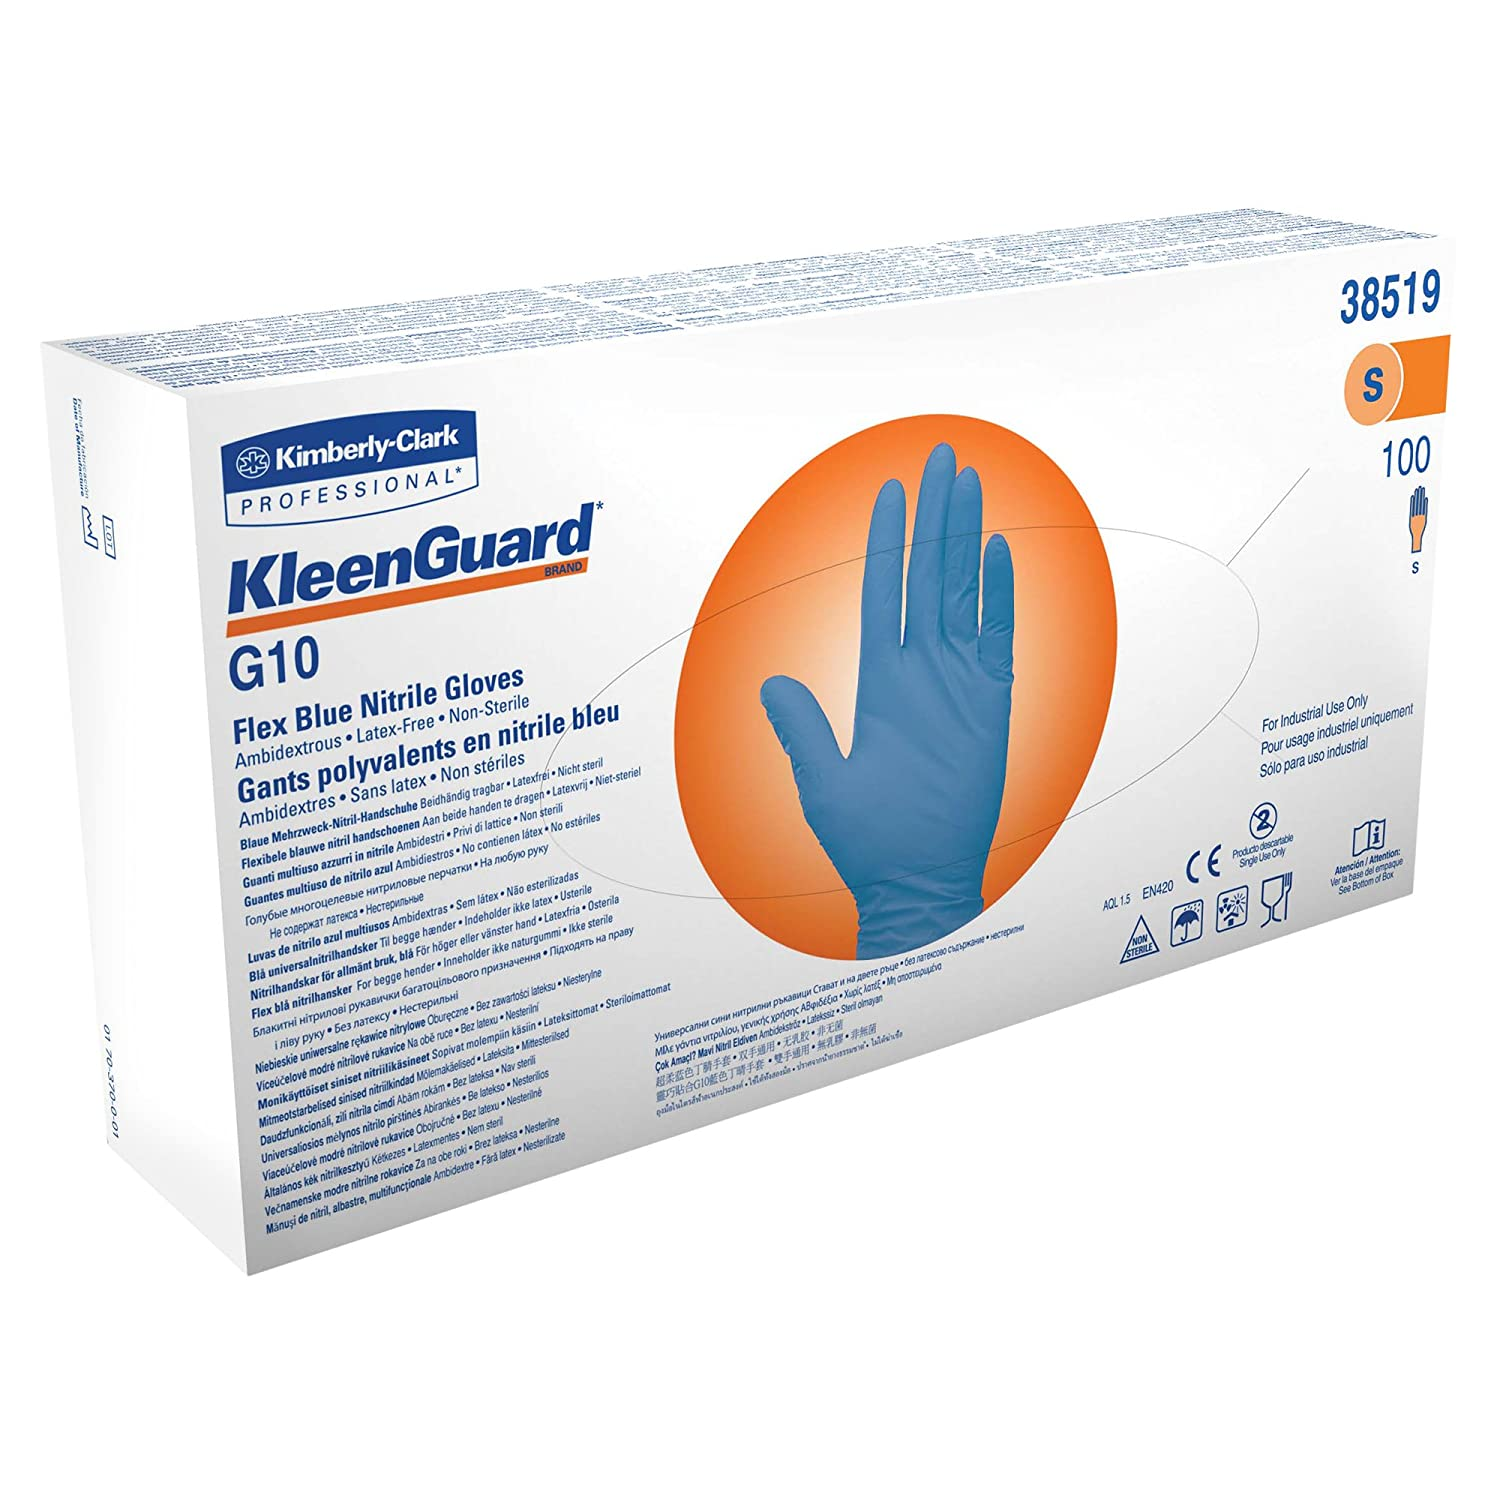 "Kleenguard G10 Flex Blue Nitrile Gloves (38519), Small, Powder-Free, 2 Mil,  9.5"", Food Handling, Ambidextrous, Thin Mil, 100 Gloves / Box: Disposable  Safety ..."